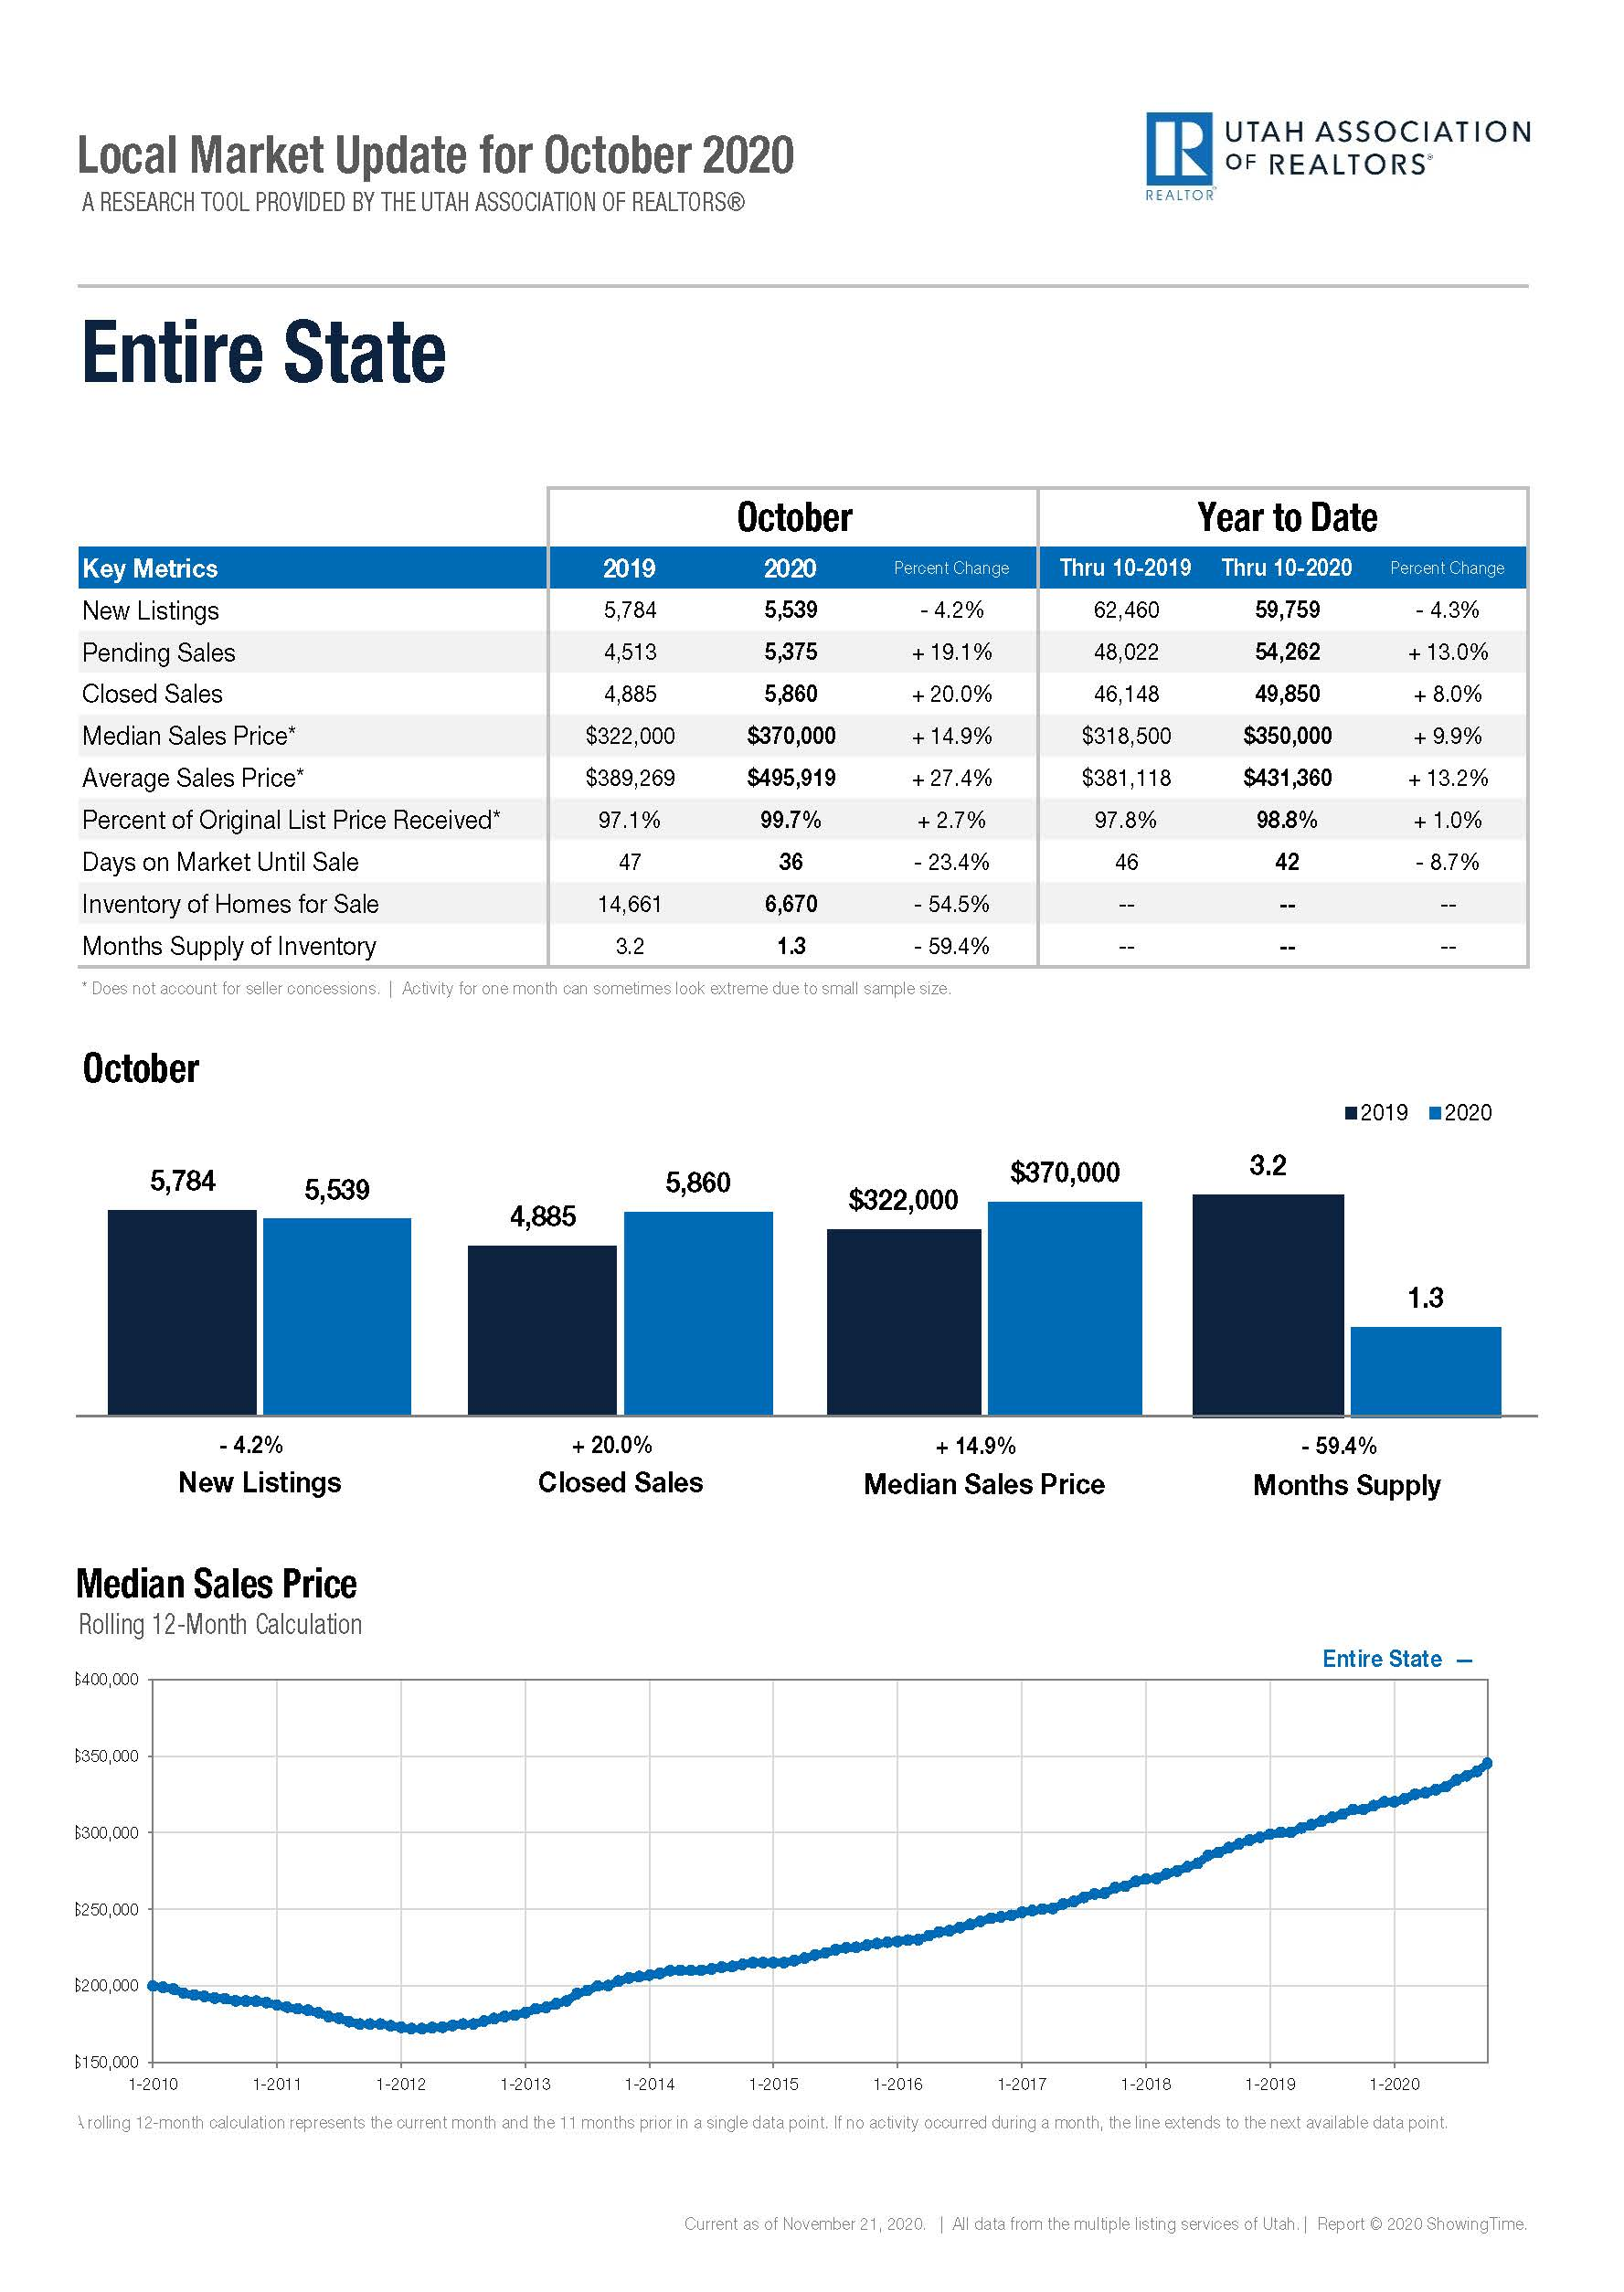 Local Marketing Update Entire State - October 2020